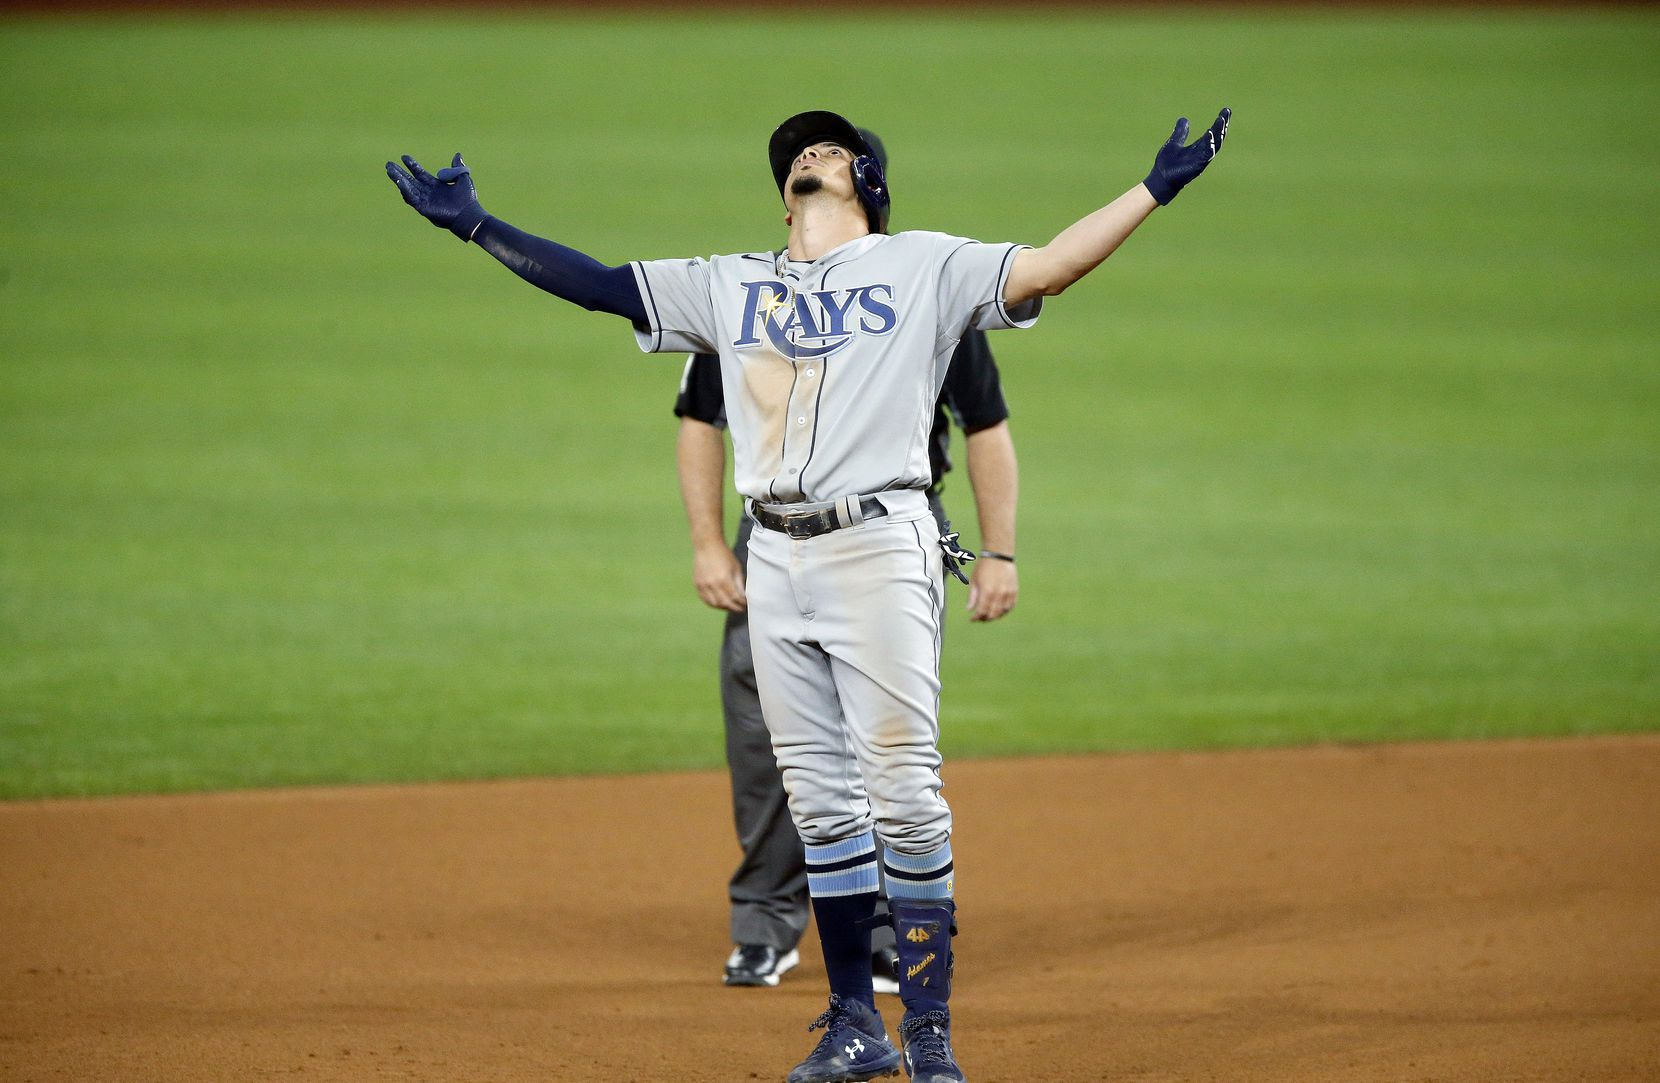 Tampa Bay Rays batter Willy Adames (1) reacts at second base on a double against the Los Angeles Dodgers during the eighth inning in Game 2 of the World Series at Globe Life Field in Arlington, Wednesday, October 21, 2020. (Tom Fox/The Dallas Morning News)